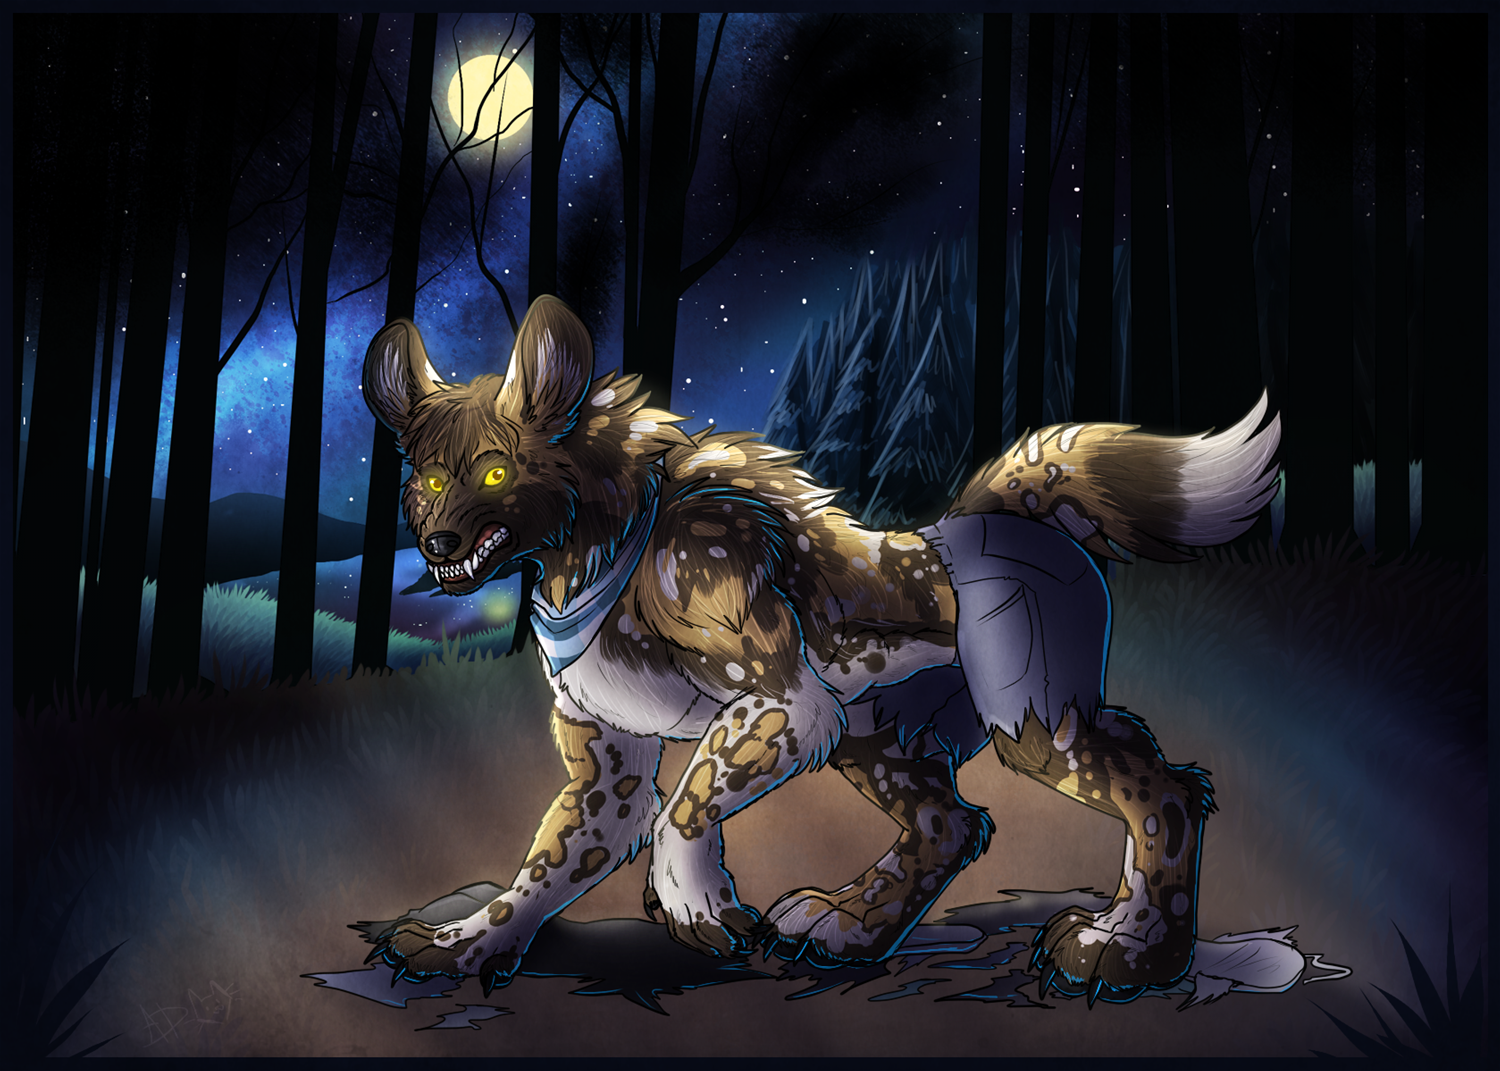 Night of the WereAWD by Spacecat